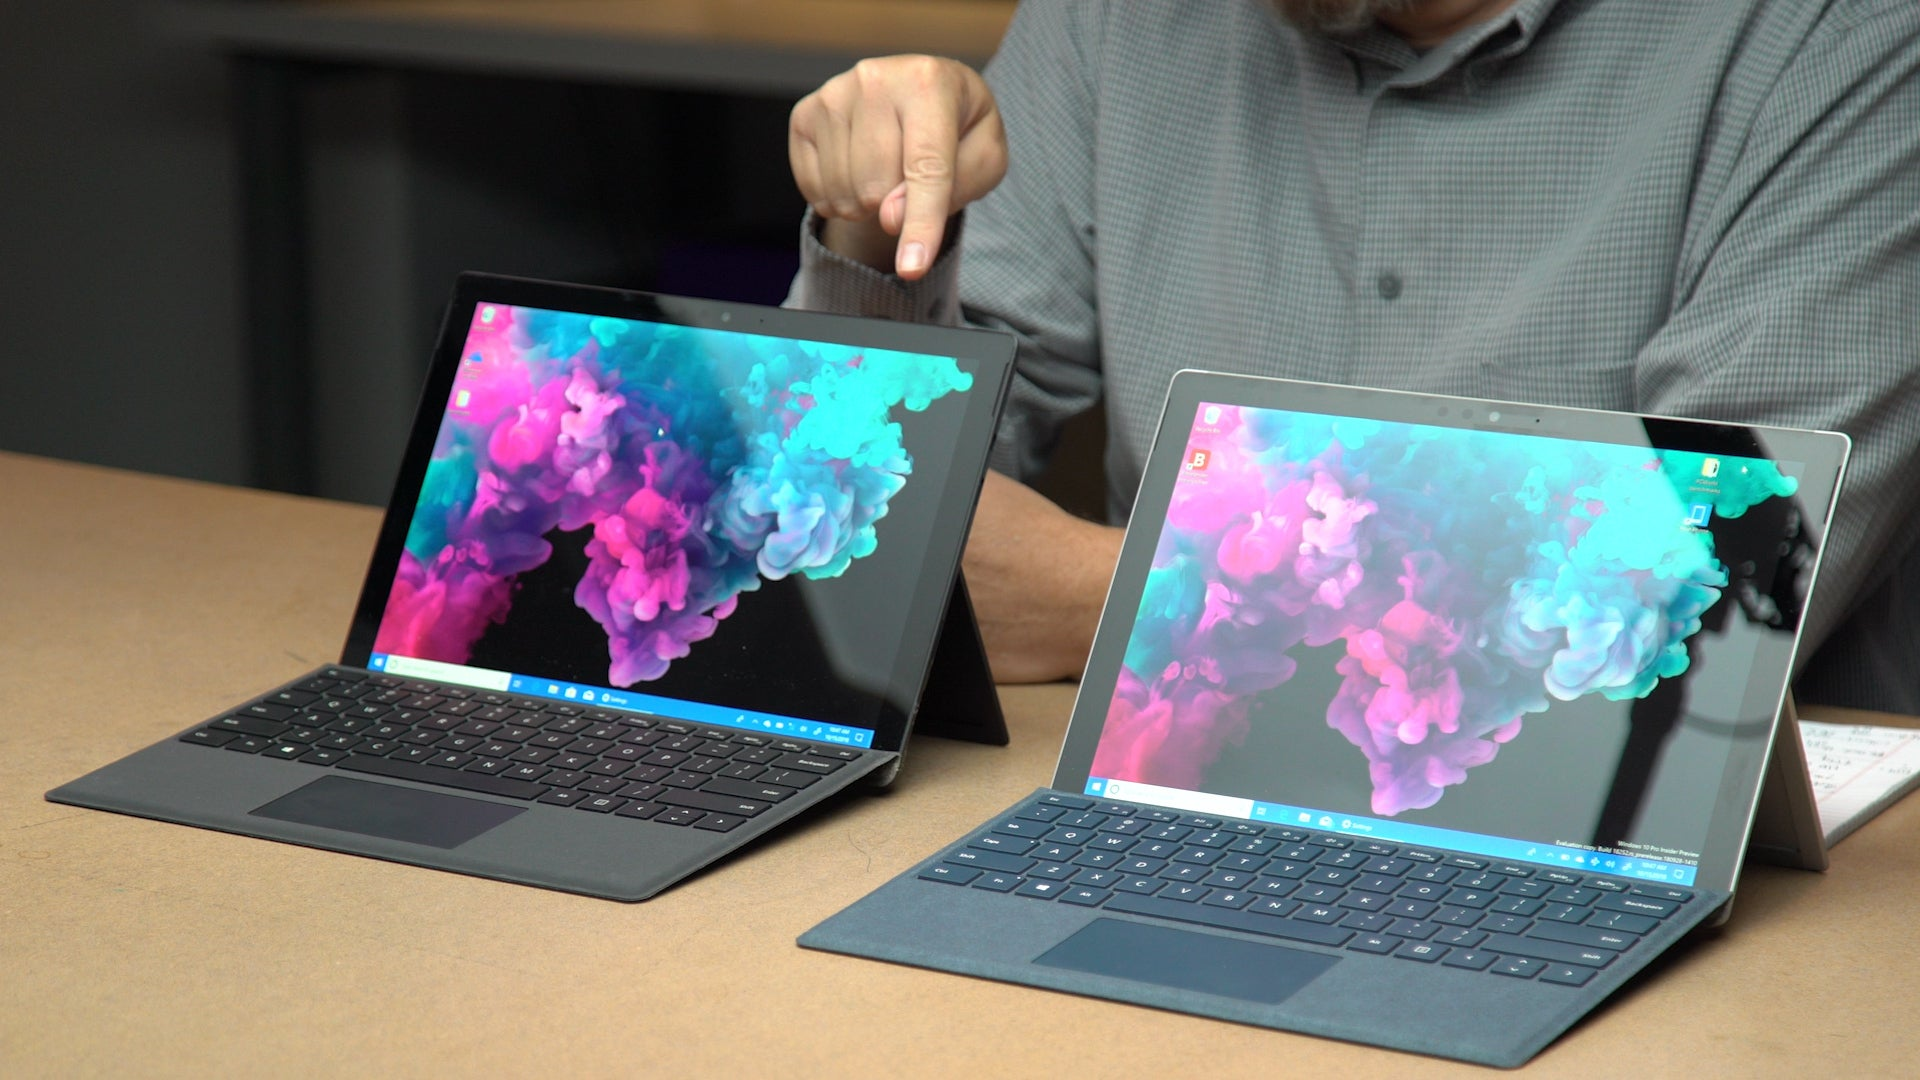 Microsoft Surface Pro 6 review: Microsoft adds quad-core